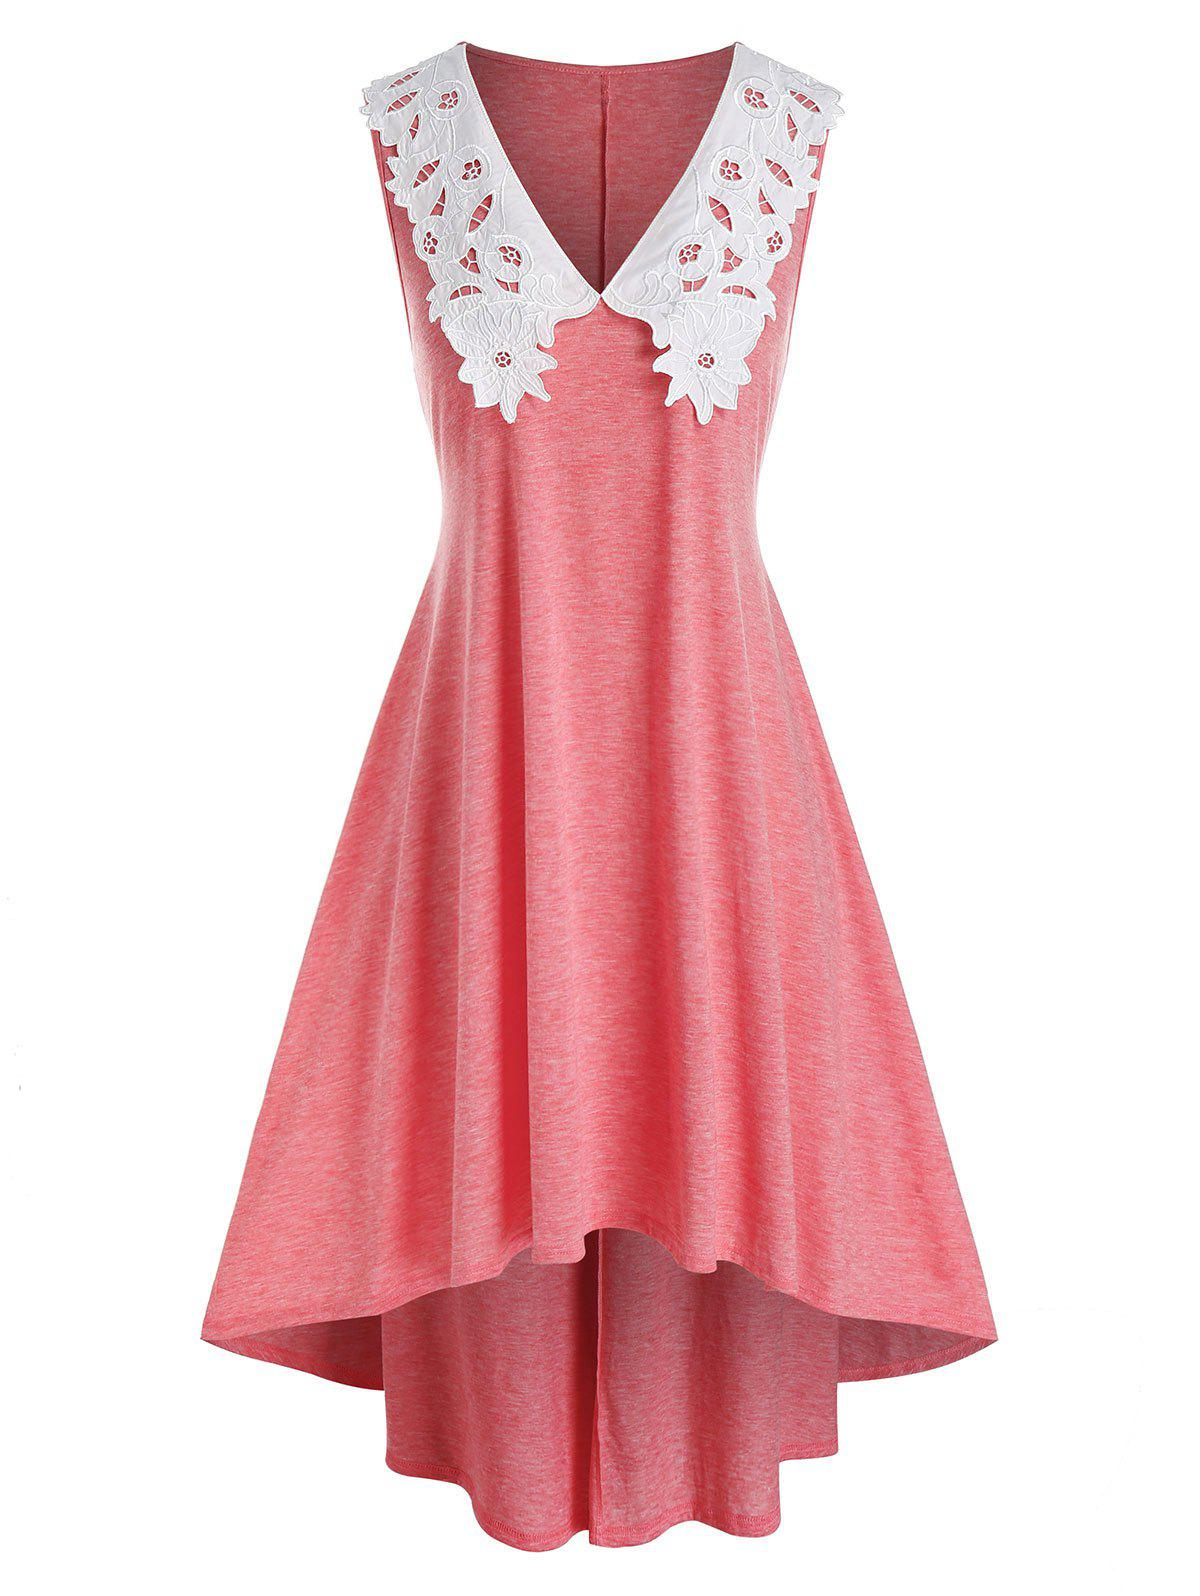 Plus Size Floral Embroidery Collar High Low Dress - LIGHT CORAL 5X